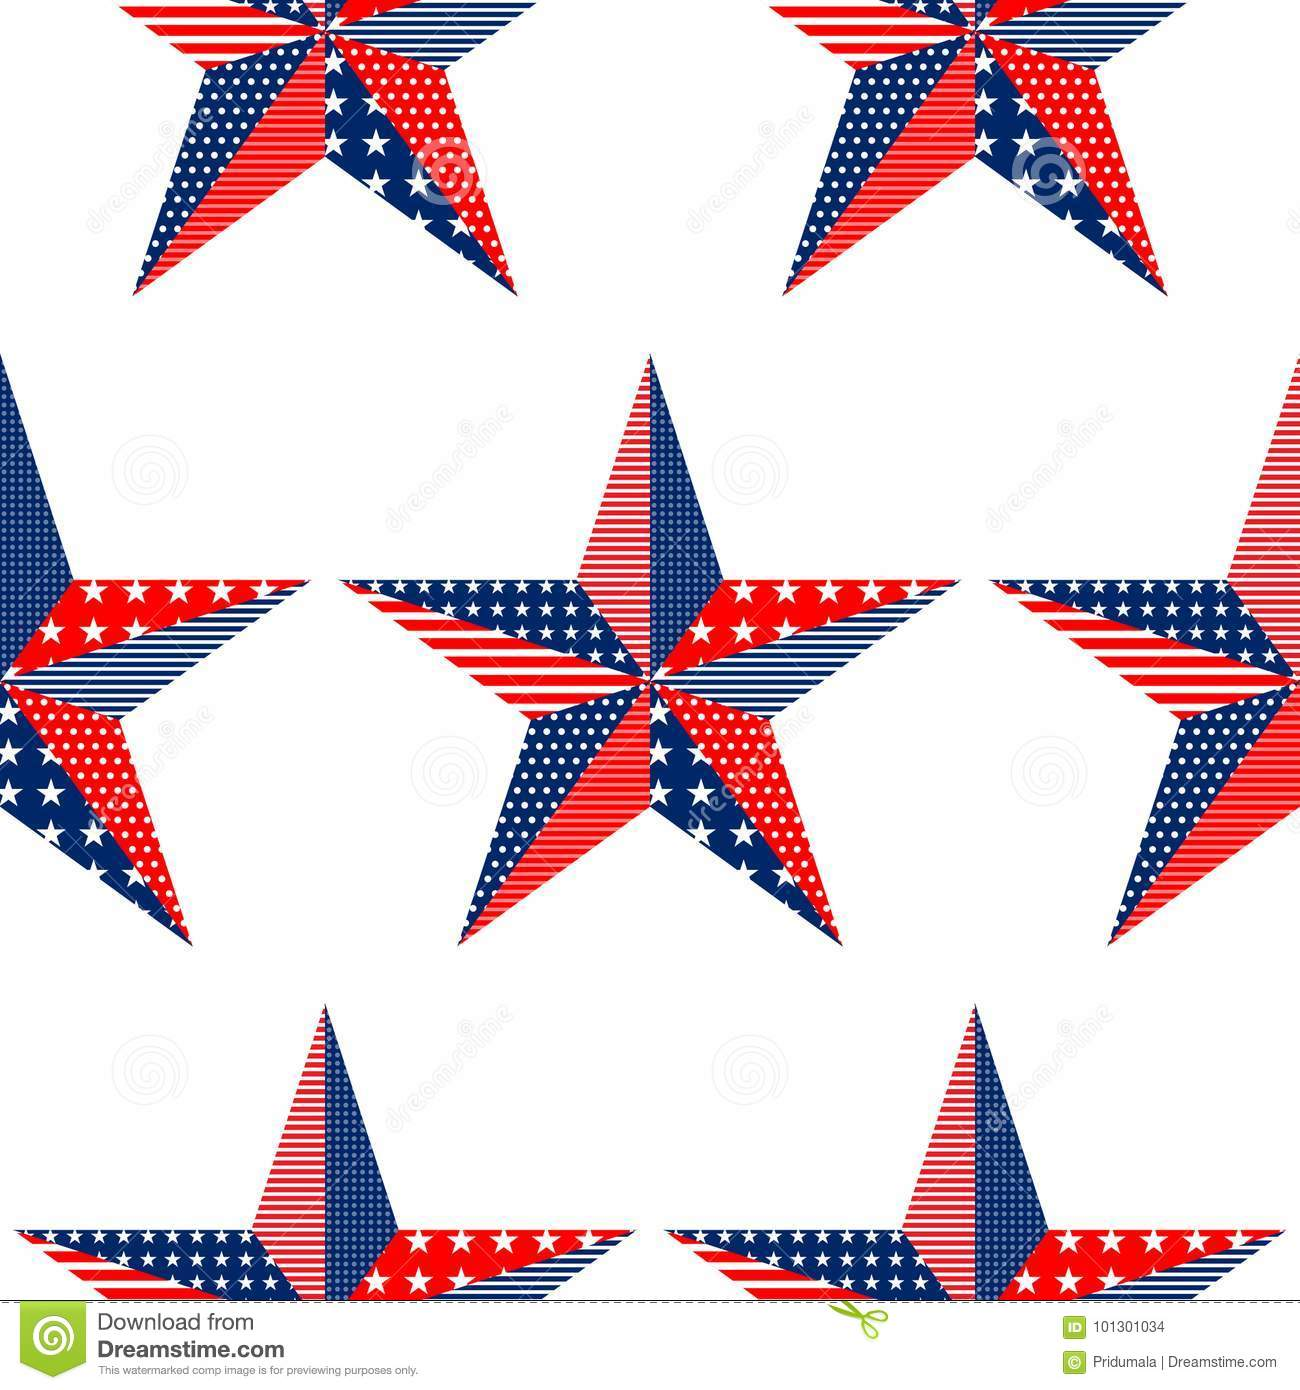 five pointed stars pattern on white background usa national flag